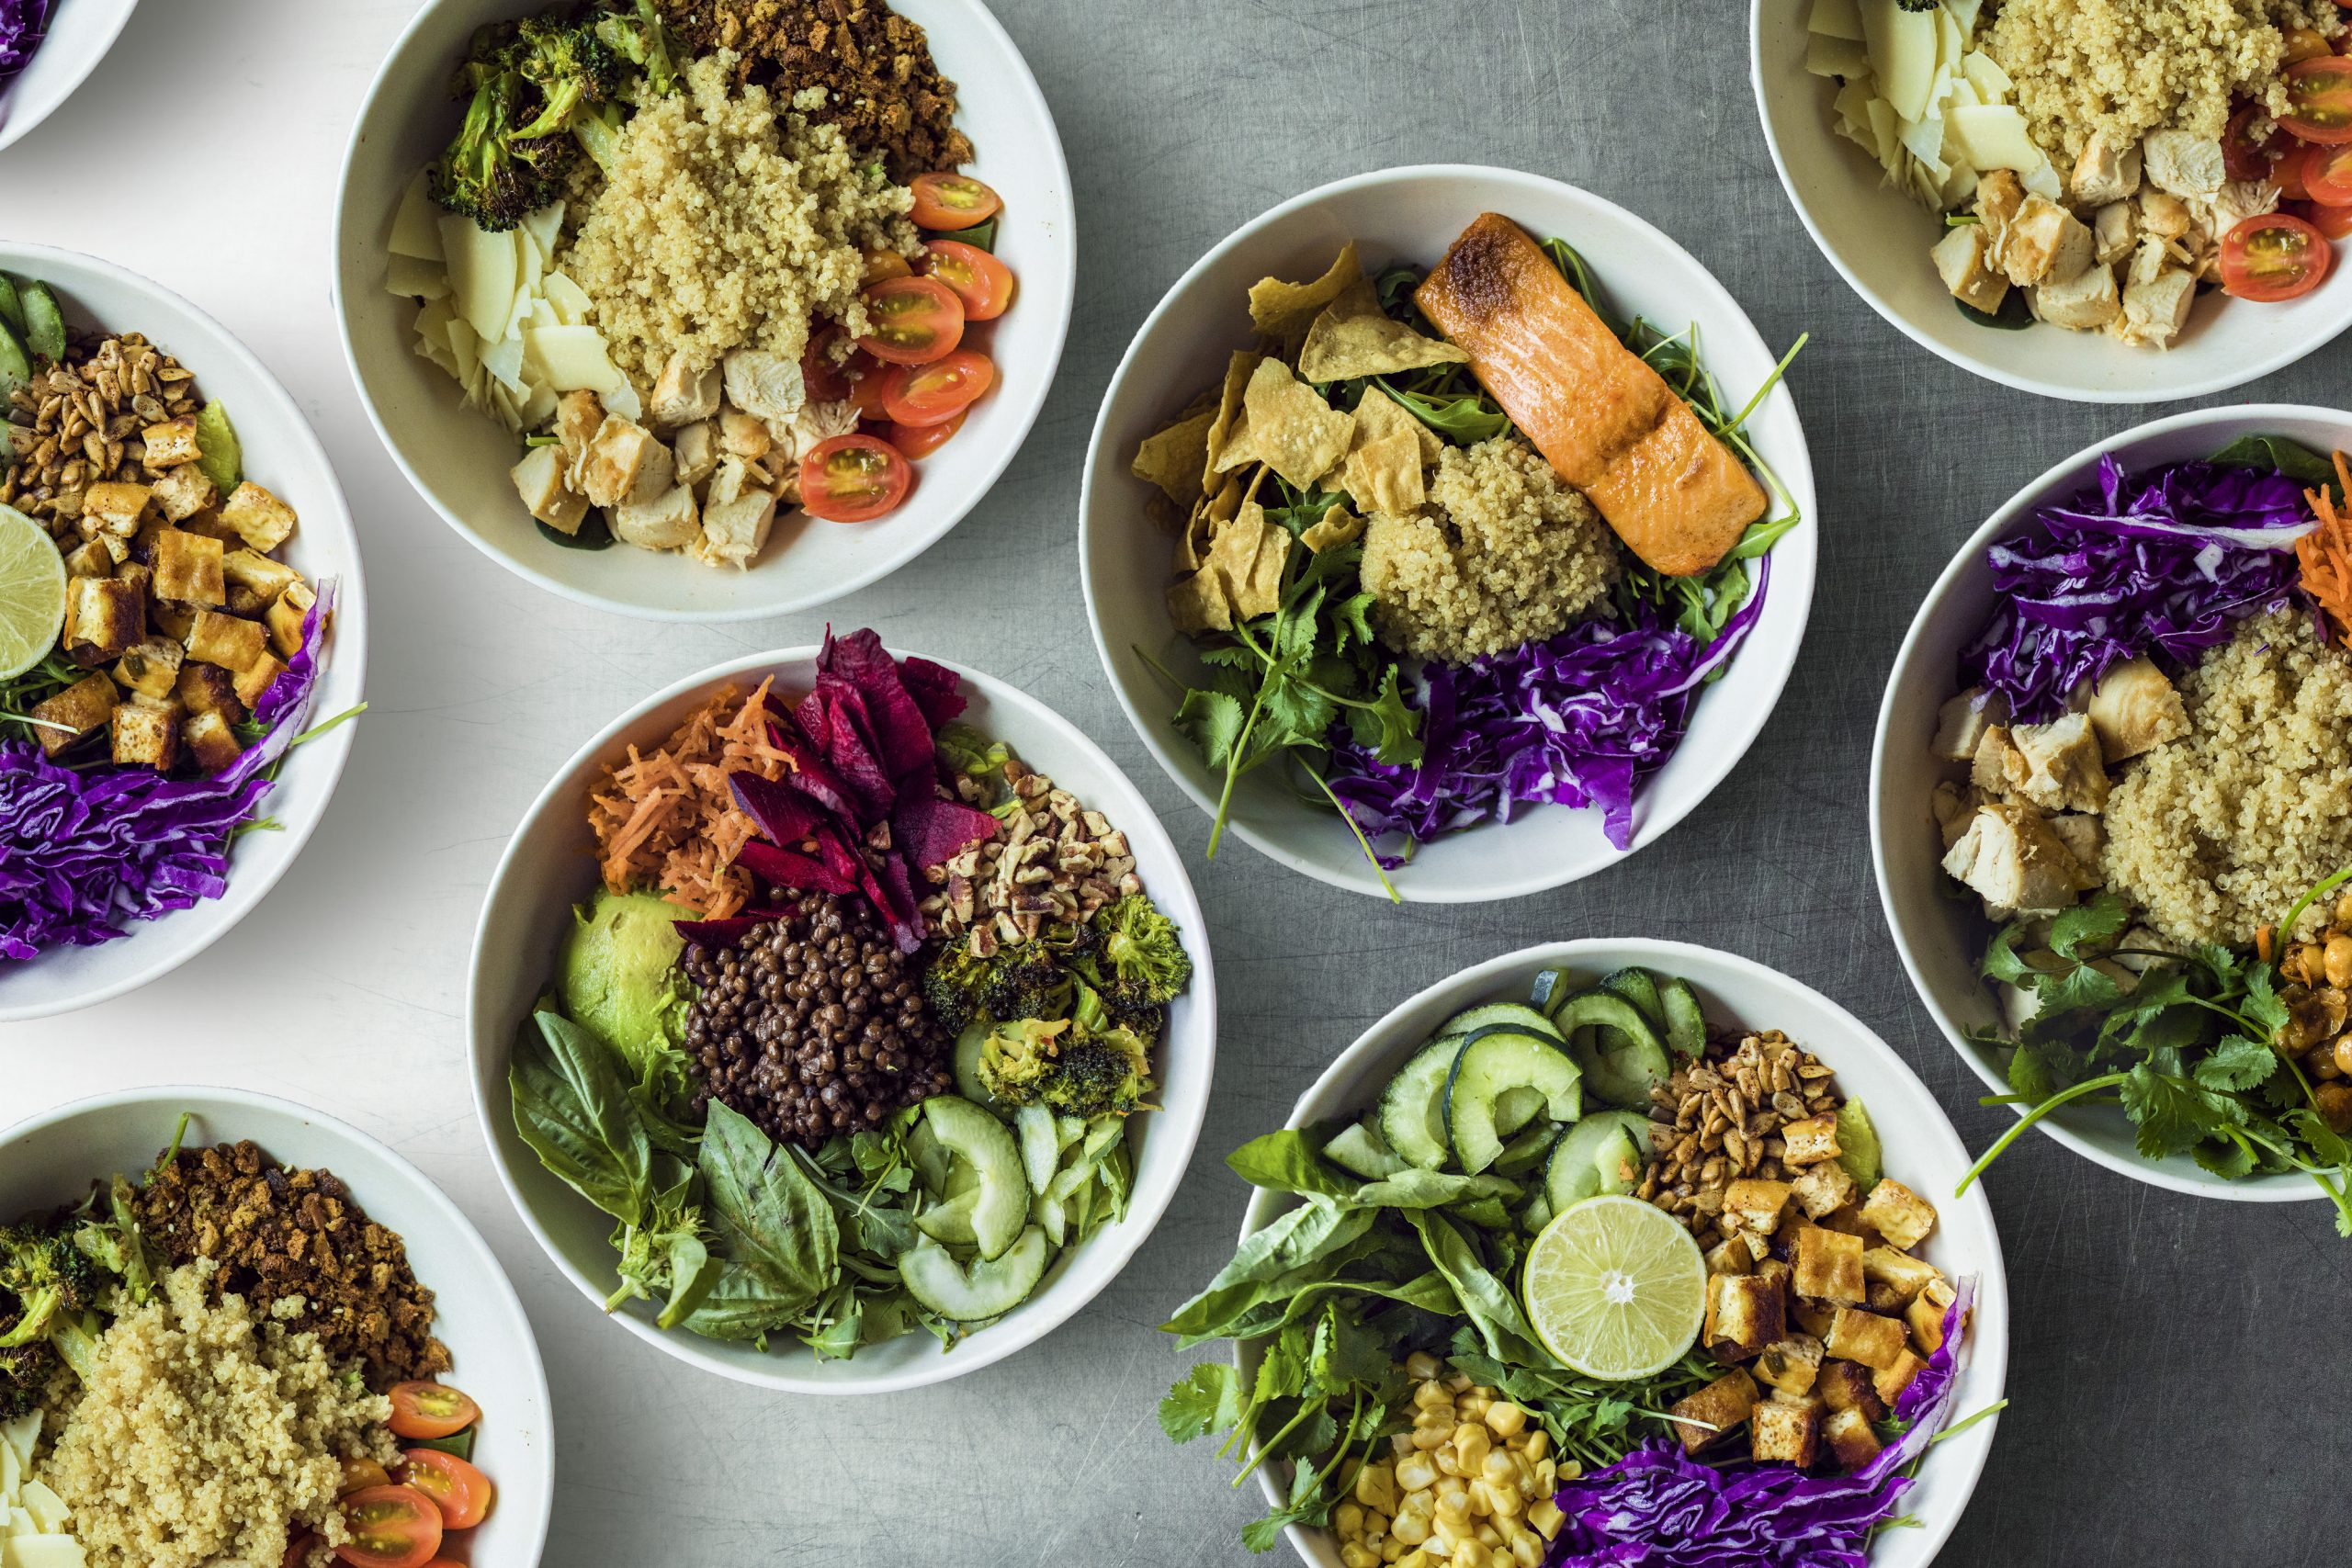 sweetgreen salad and grain bowls